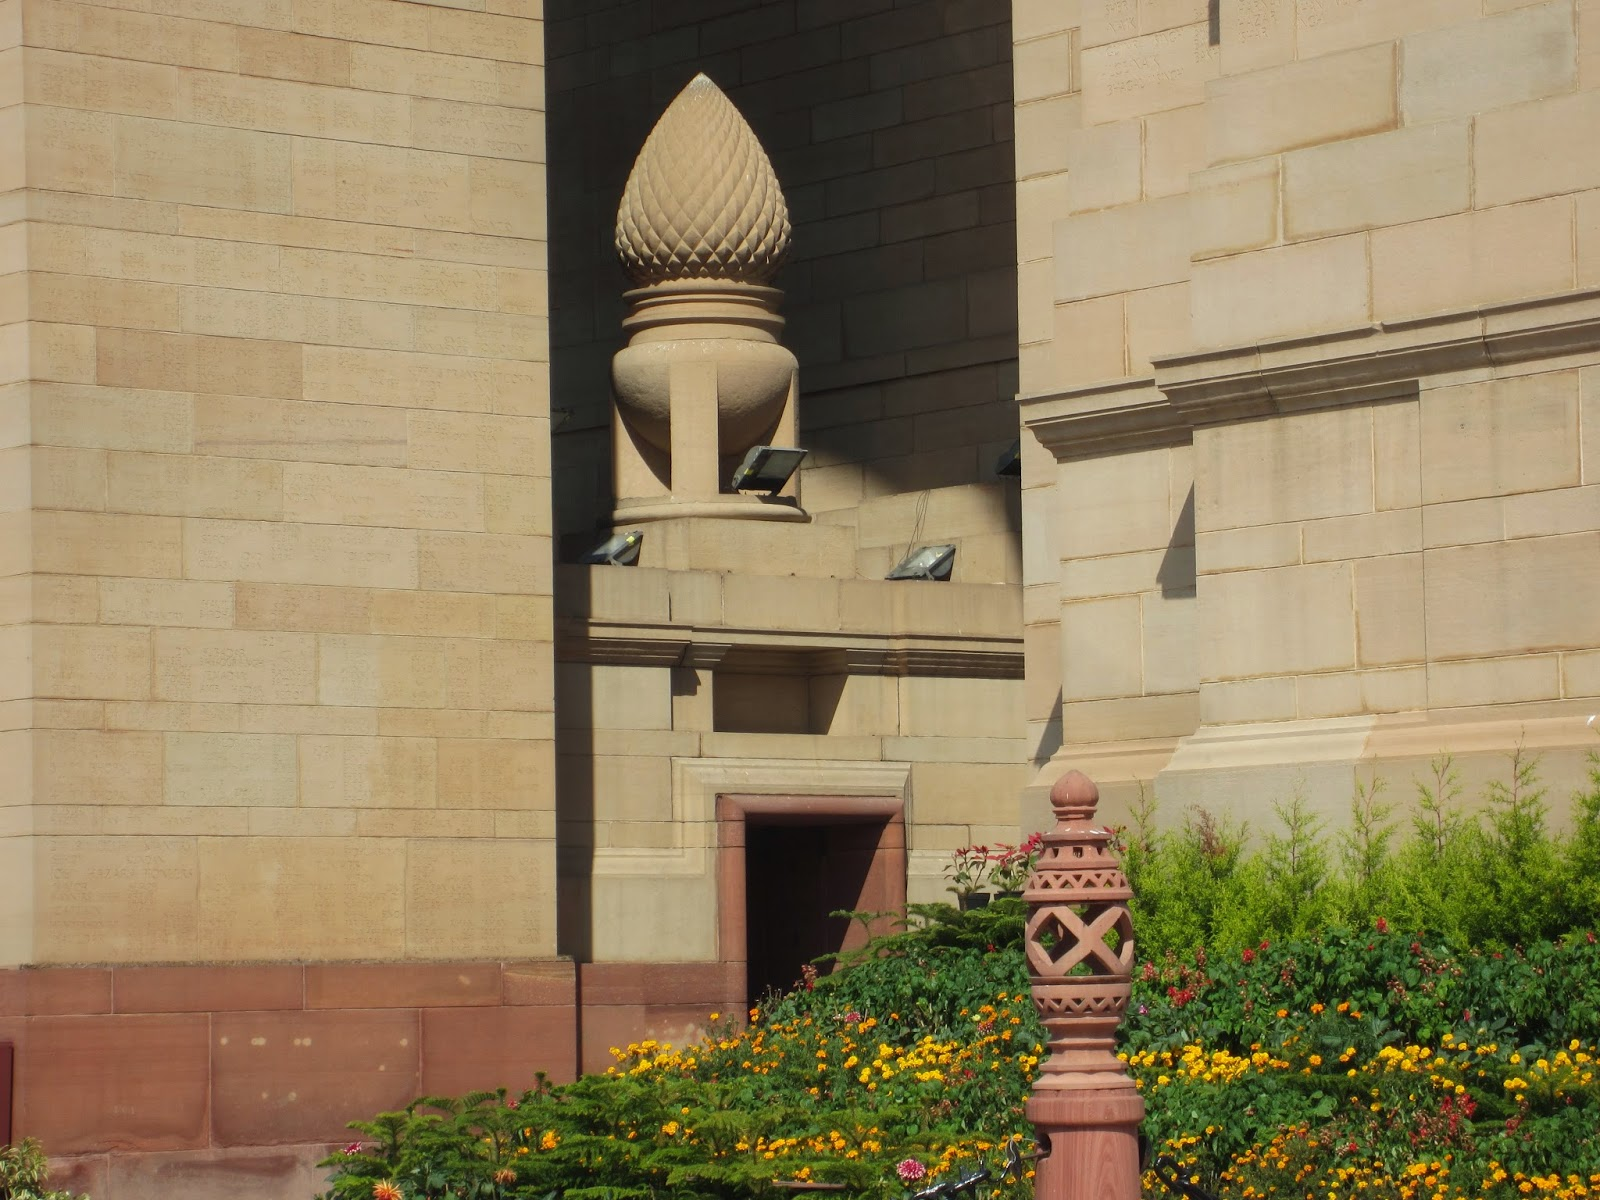 Online thesis sites in india image 1